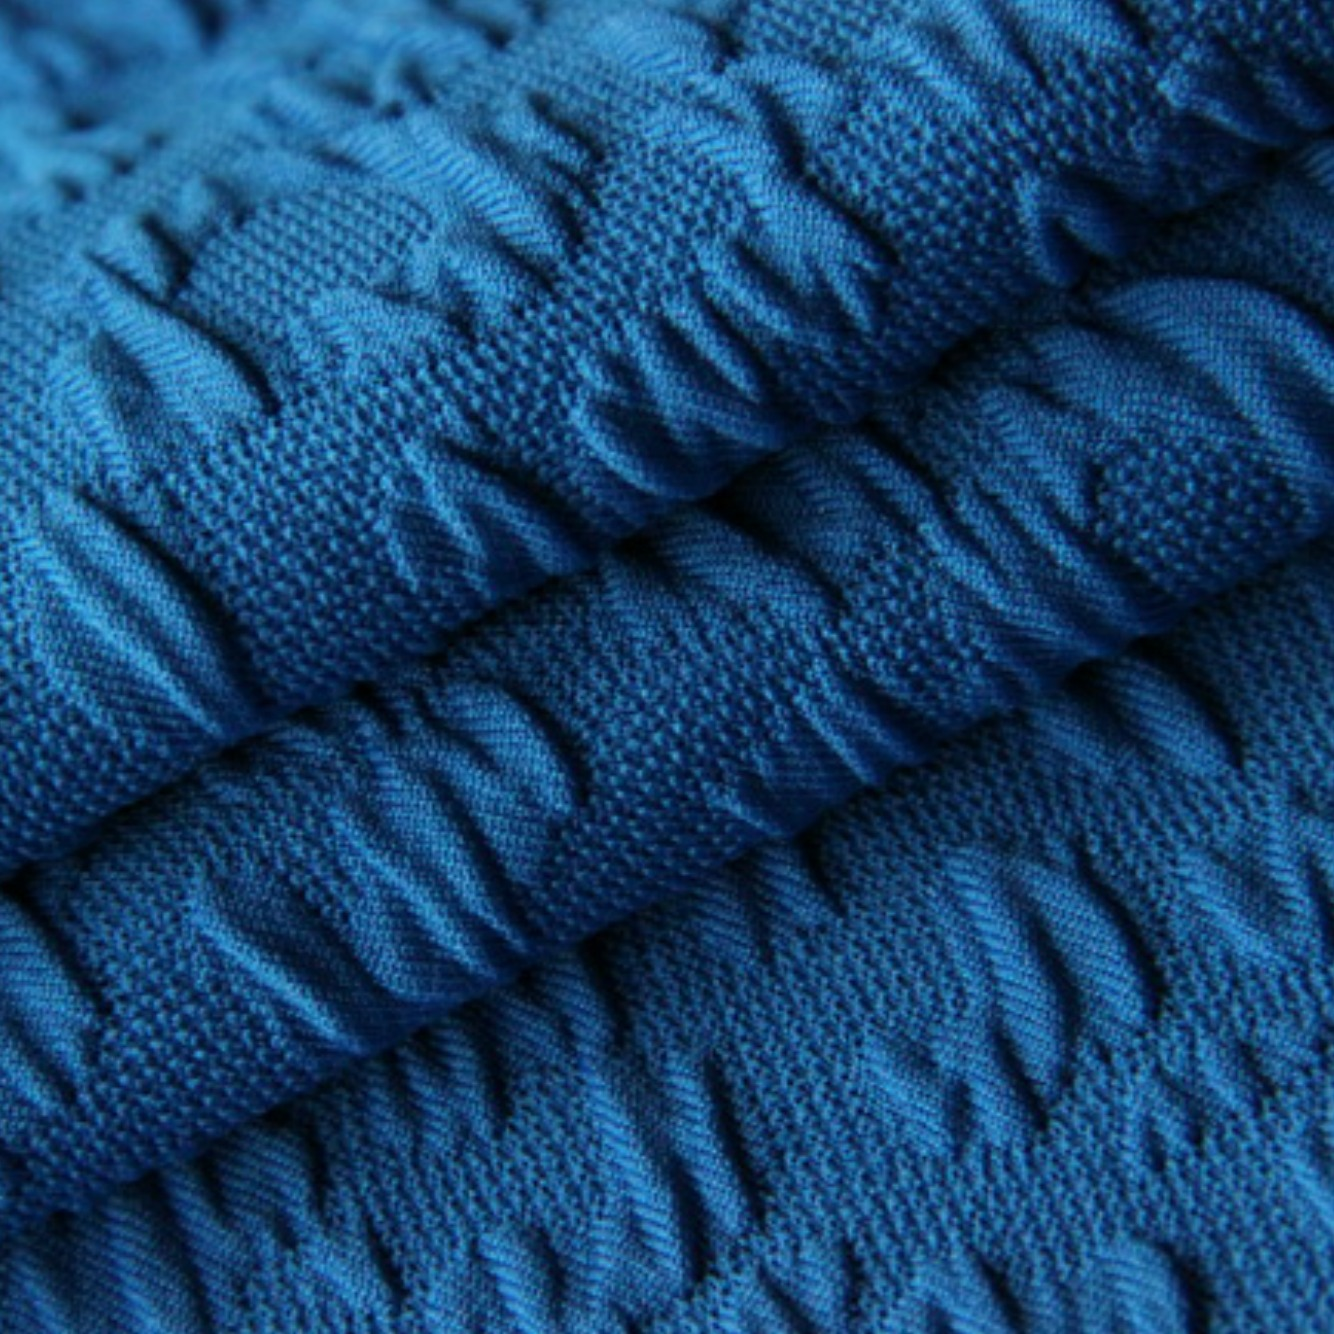 Knit Jacquard Fabric Brocade Jacquard Fabric Manufacturer